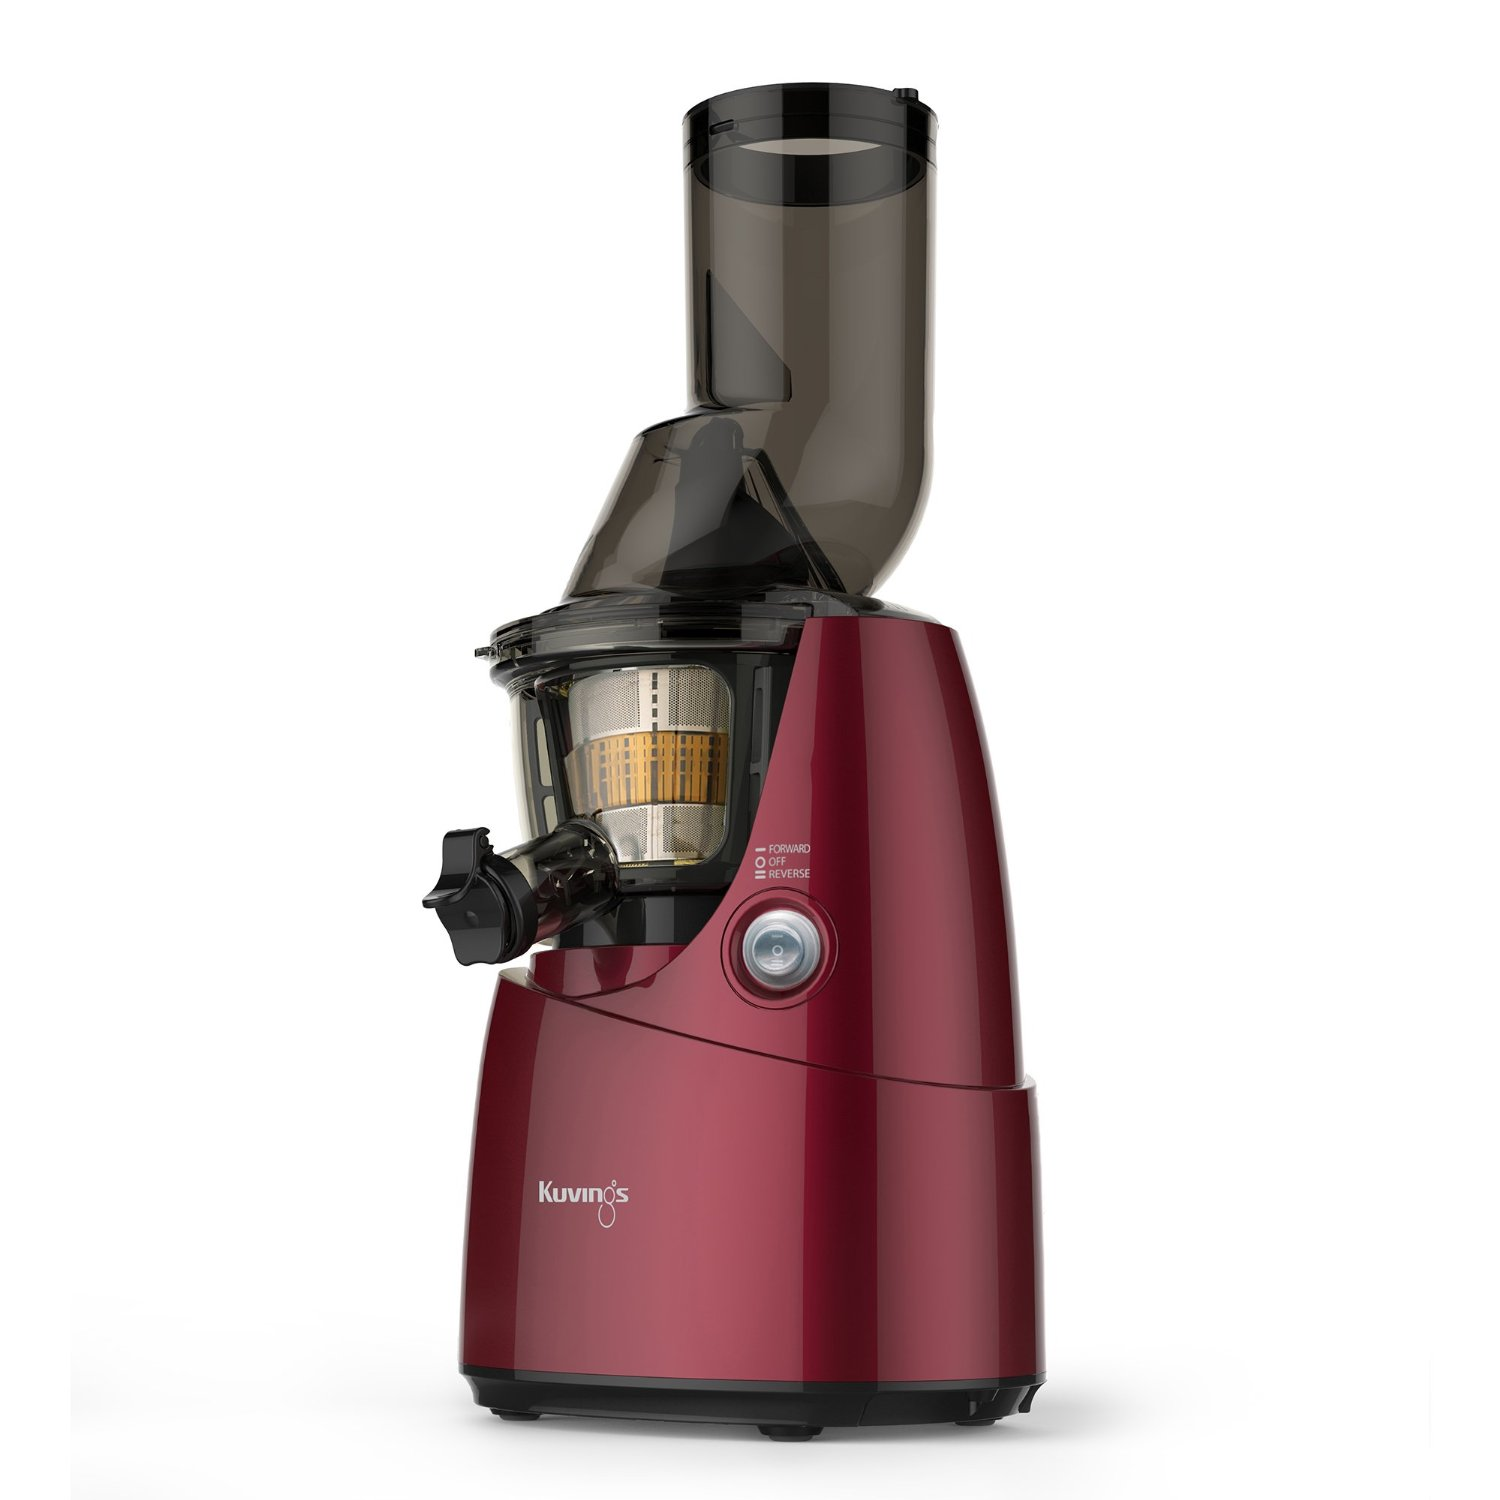 Kuvings B6000 Upright Slow Silent Masticating Juicer Review